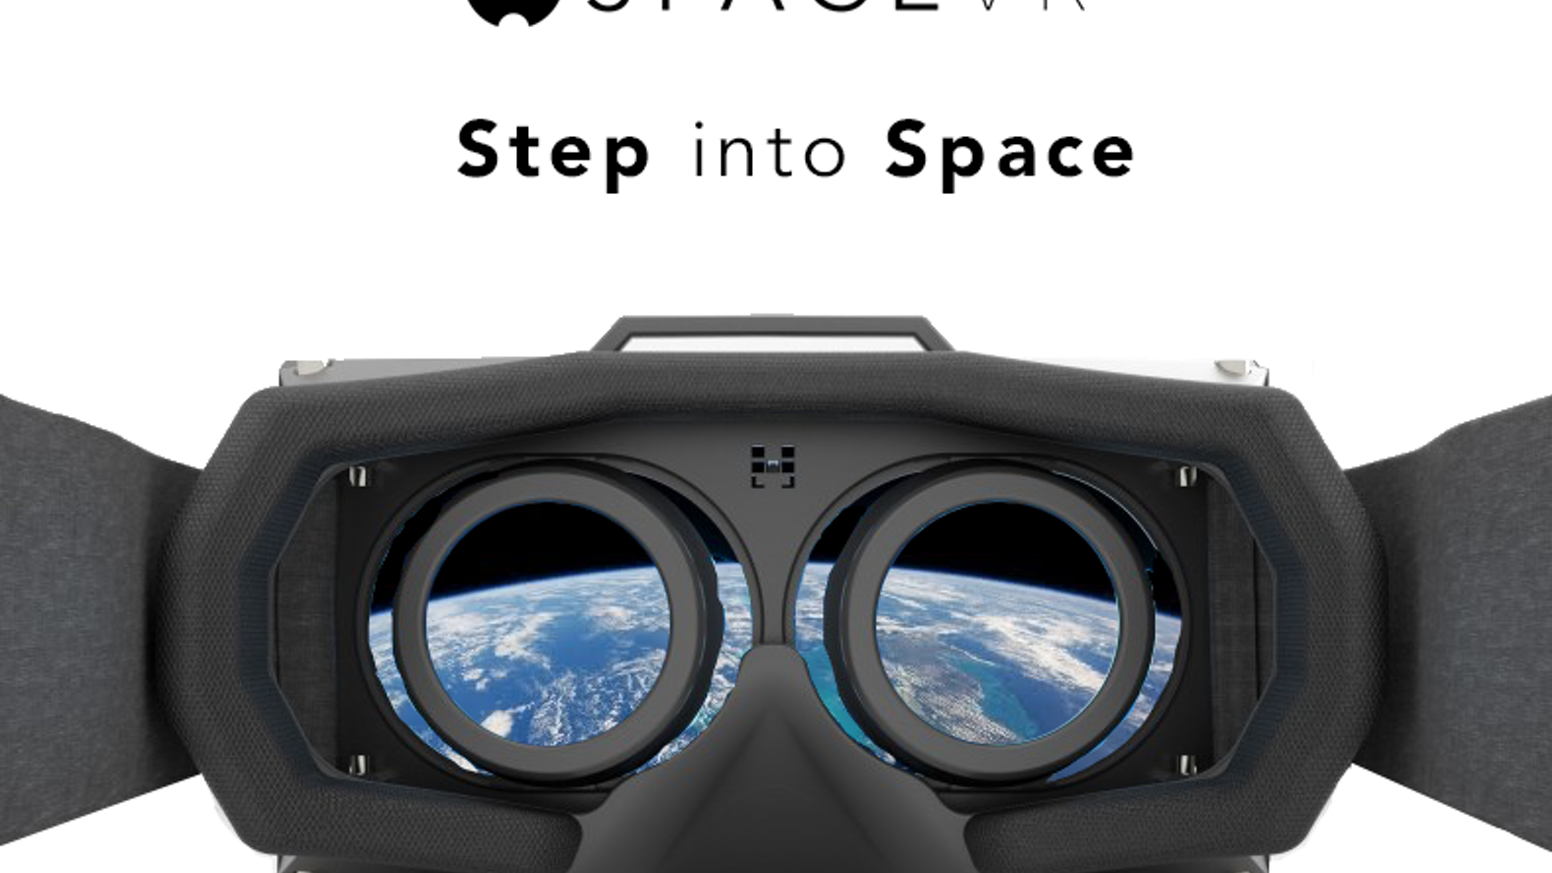 Giving everyone the opportunity to explore space by putting a virtual reality camera on the International Space Station!